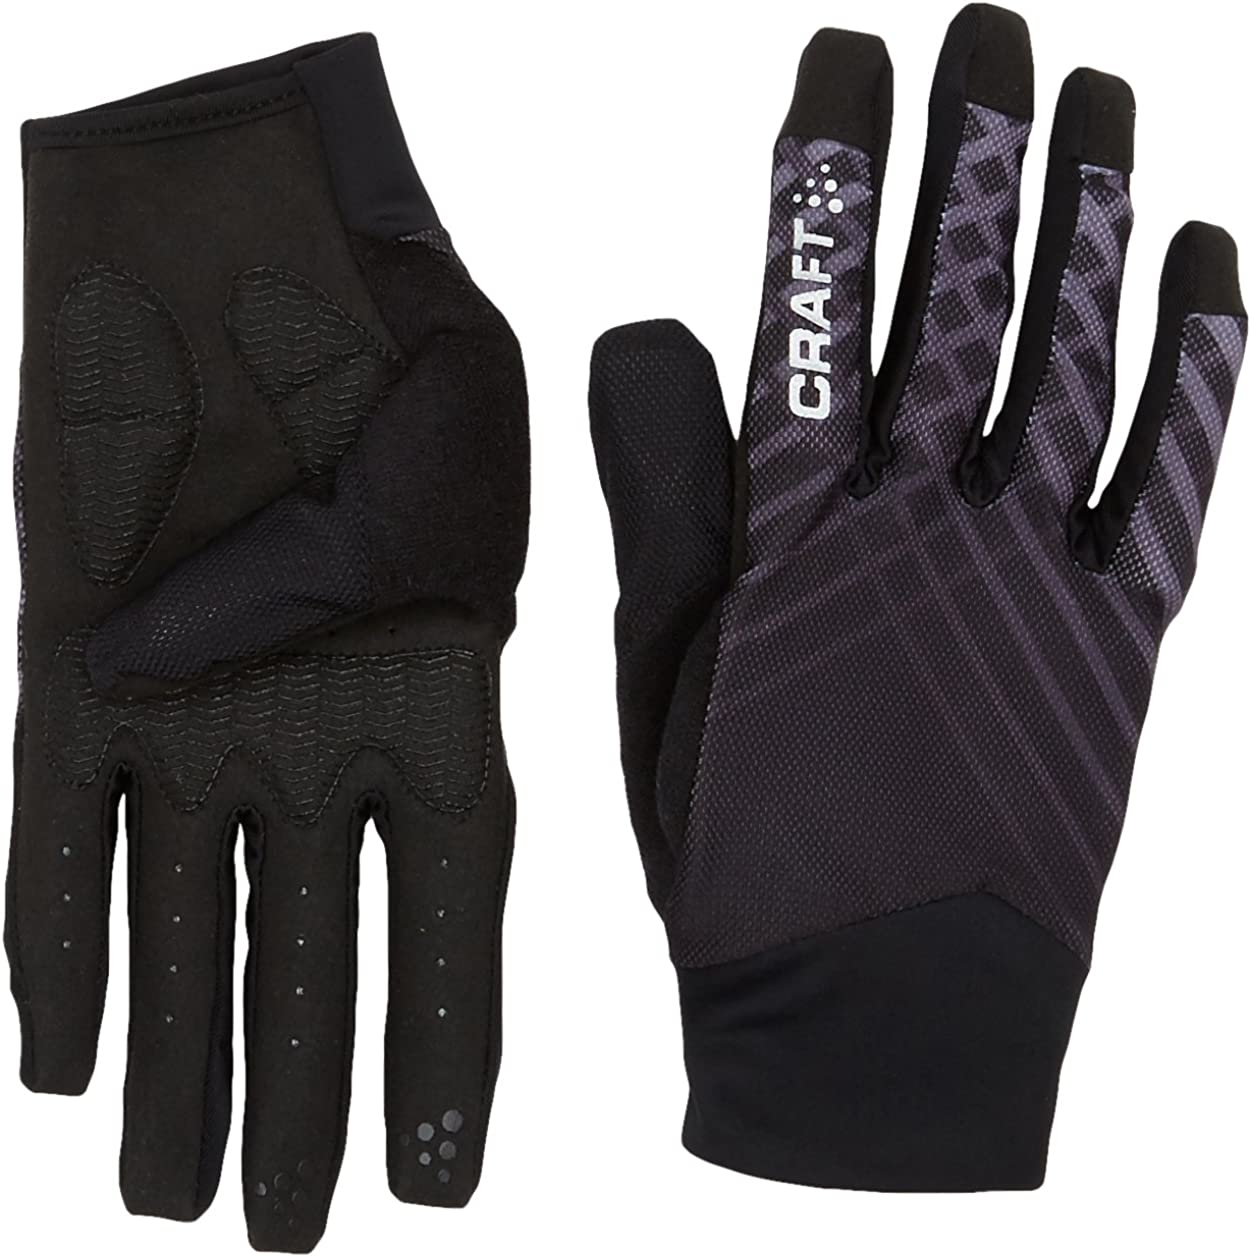 Craft Charge Running Training Bike Cycling Reflective Gloves with Gel Inserts